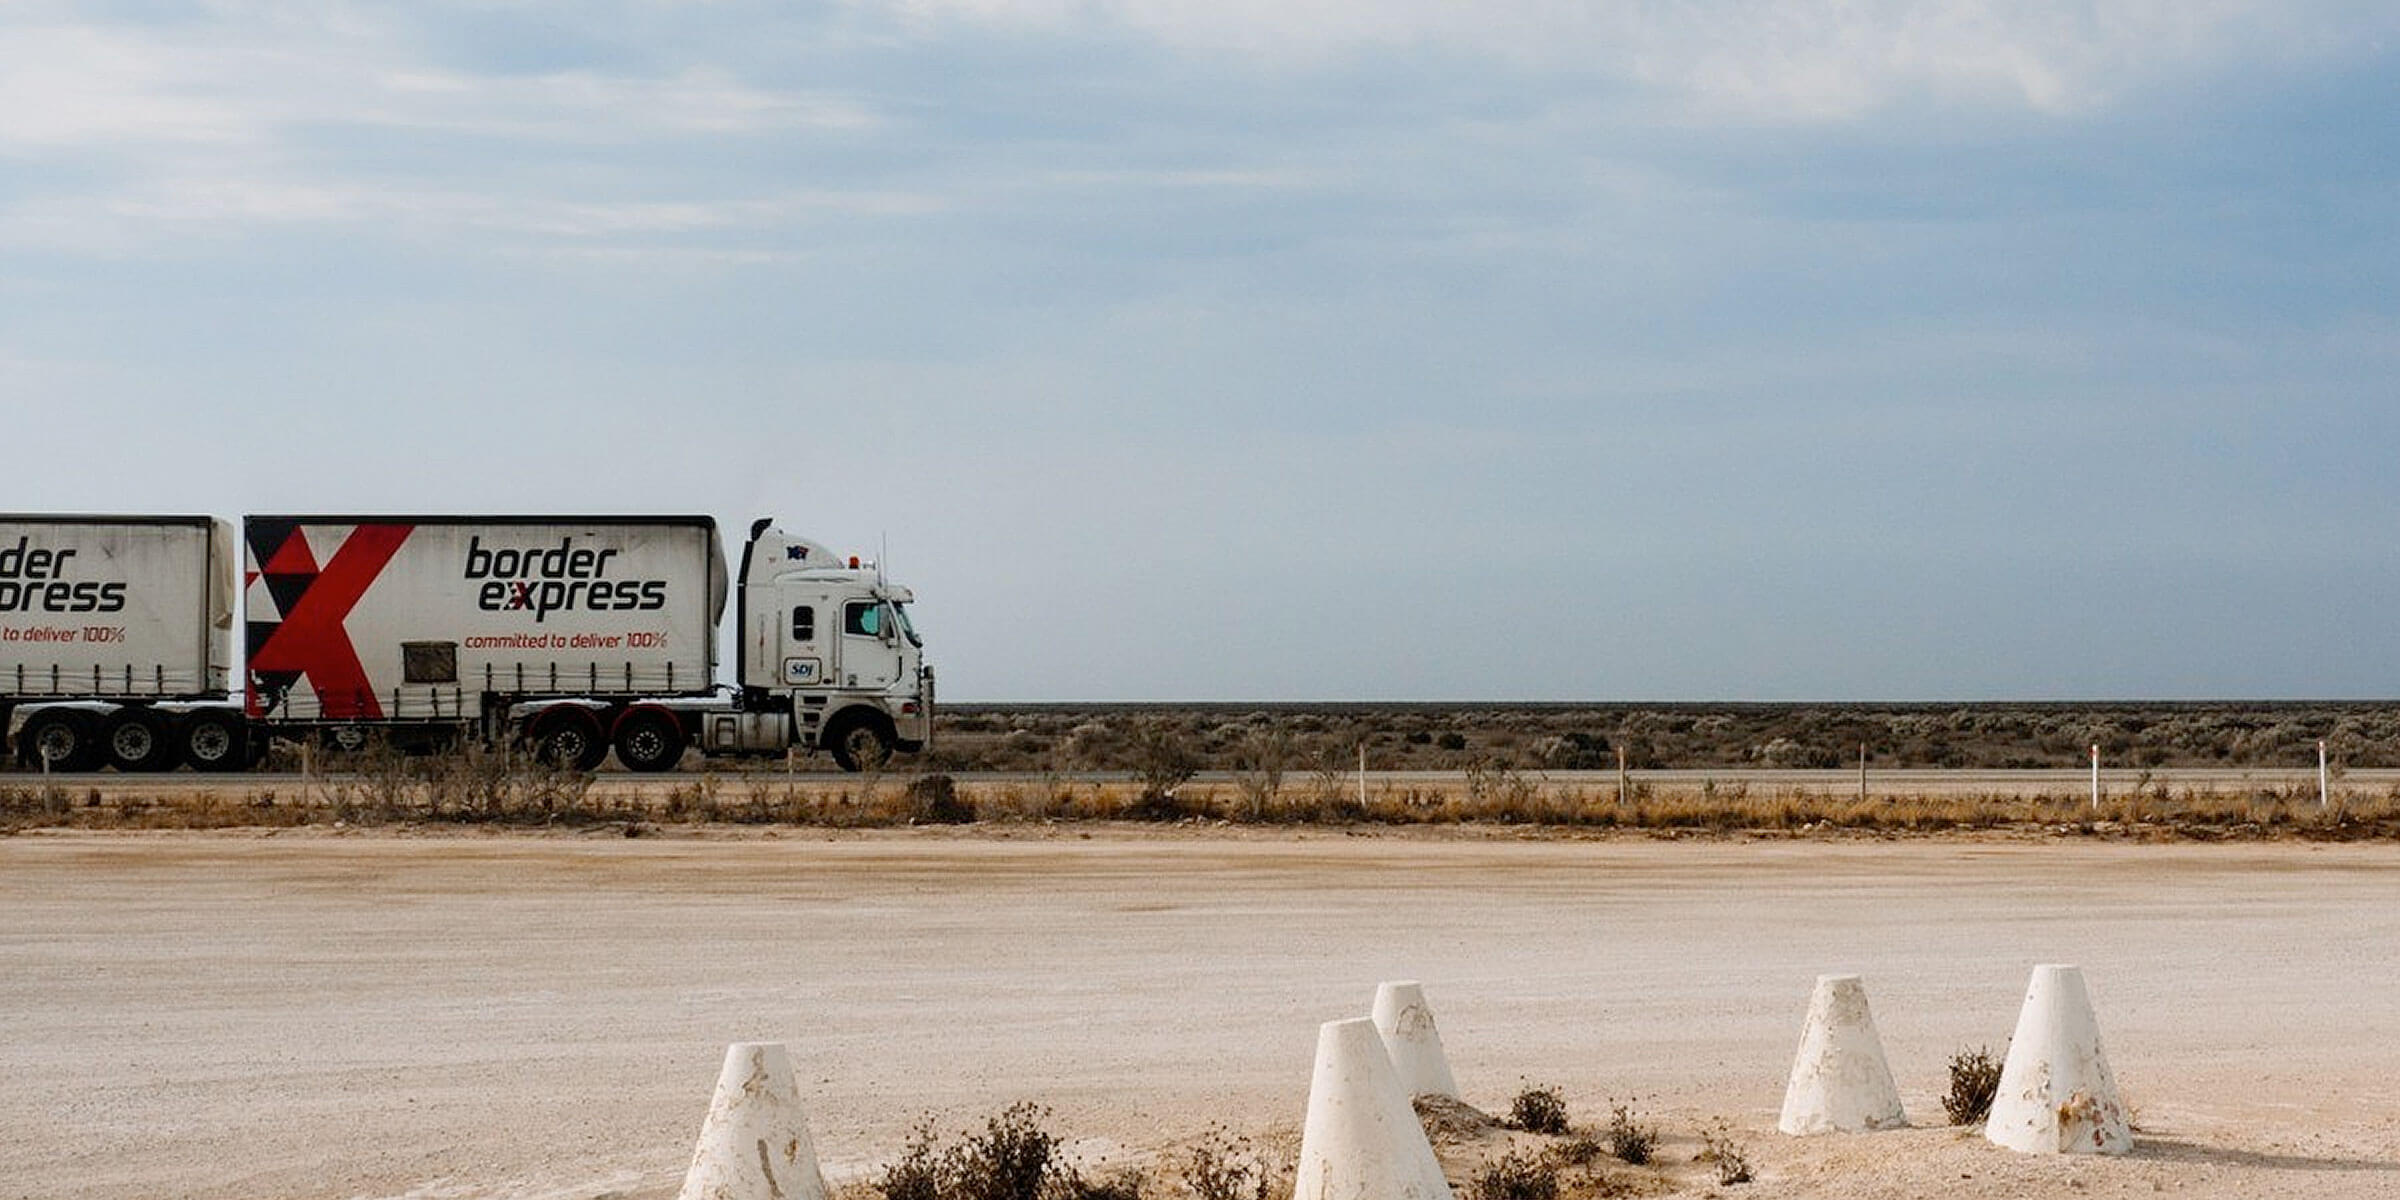 As Australia emerges from its coronavirus lockdown, priorities have been set, and convoys have been urgently dispatched to resupply pubs in the Outback.